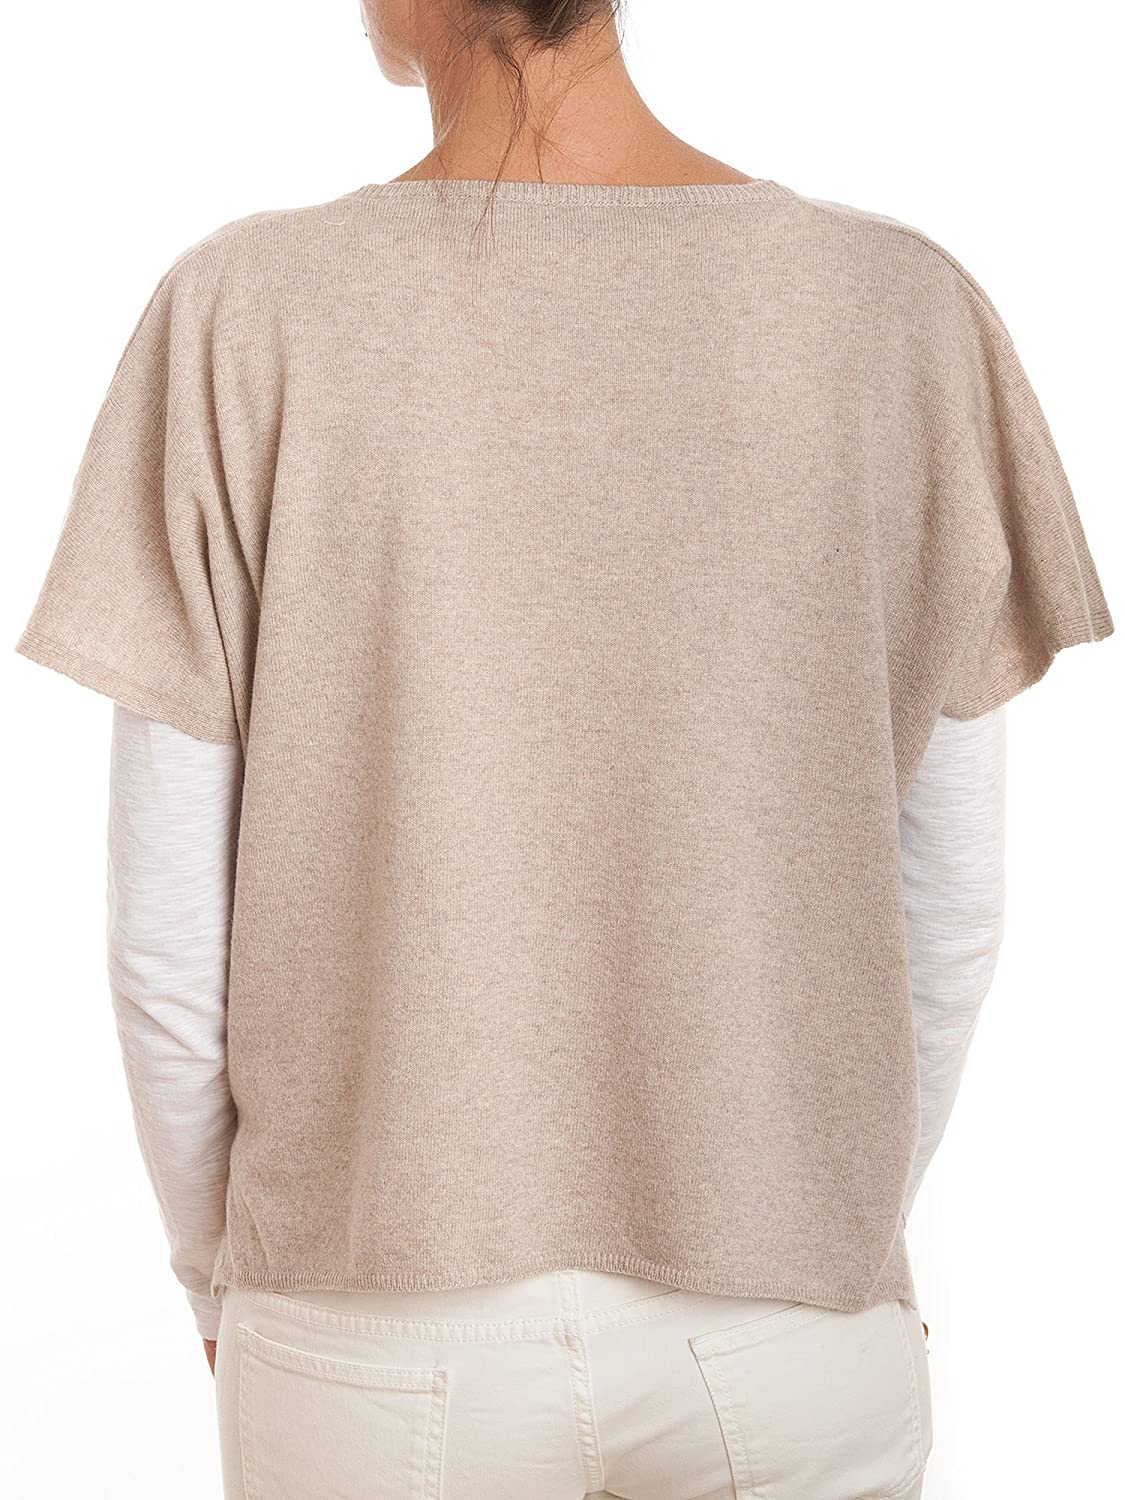 Dalle Piane Cashmere Poncho with buttons cashmere blended yarns Women